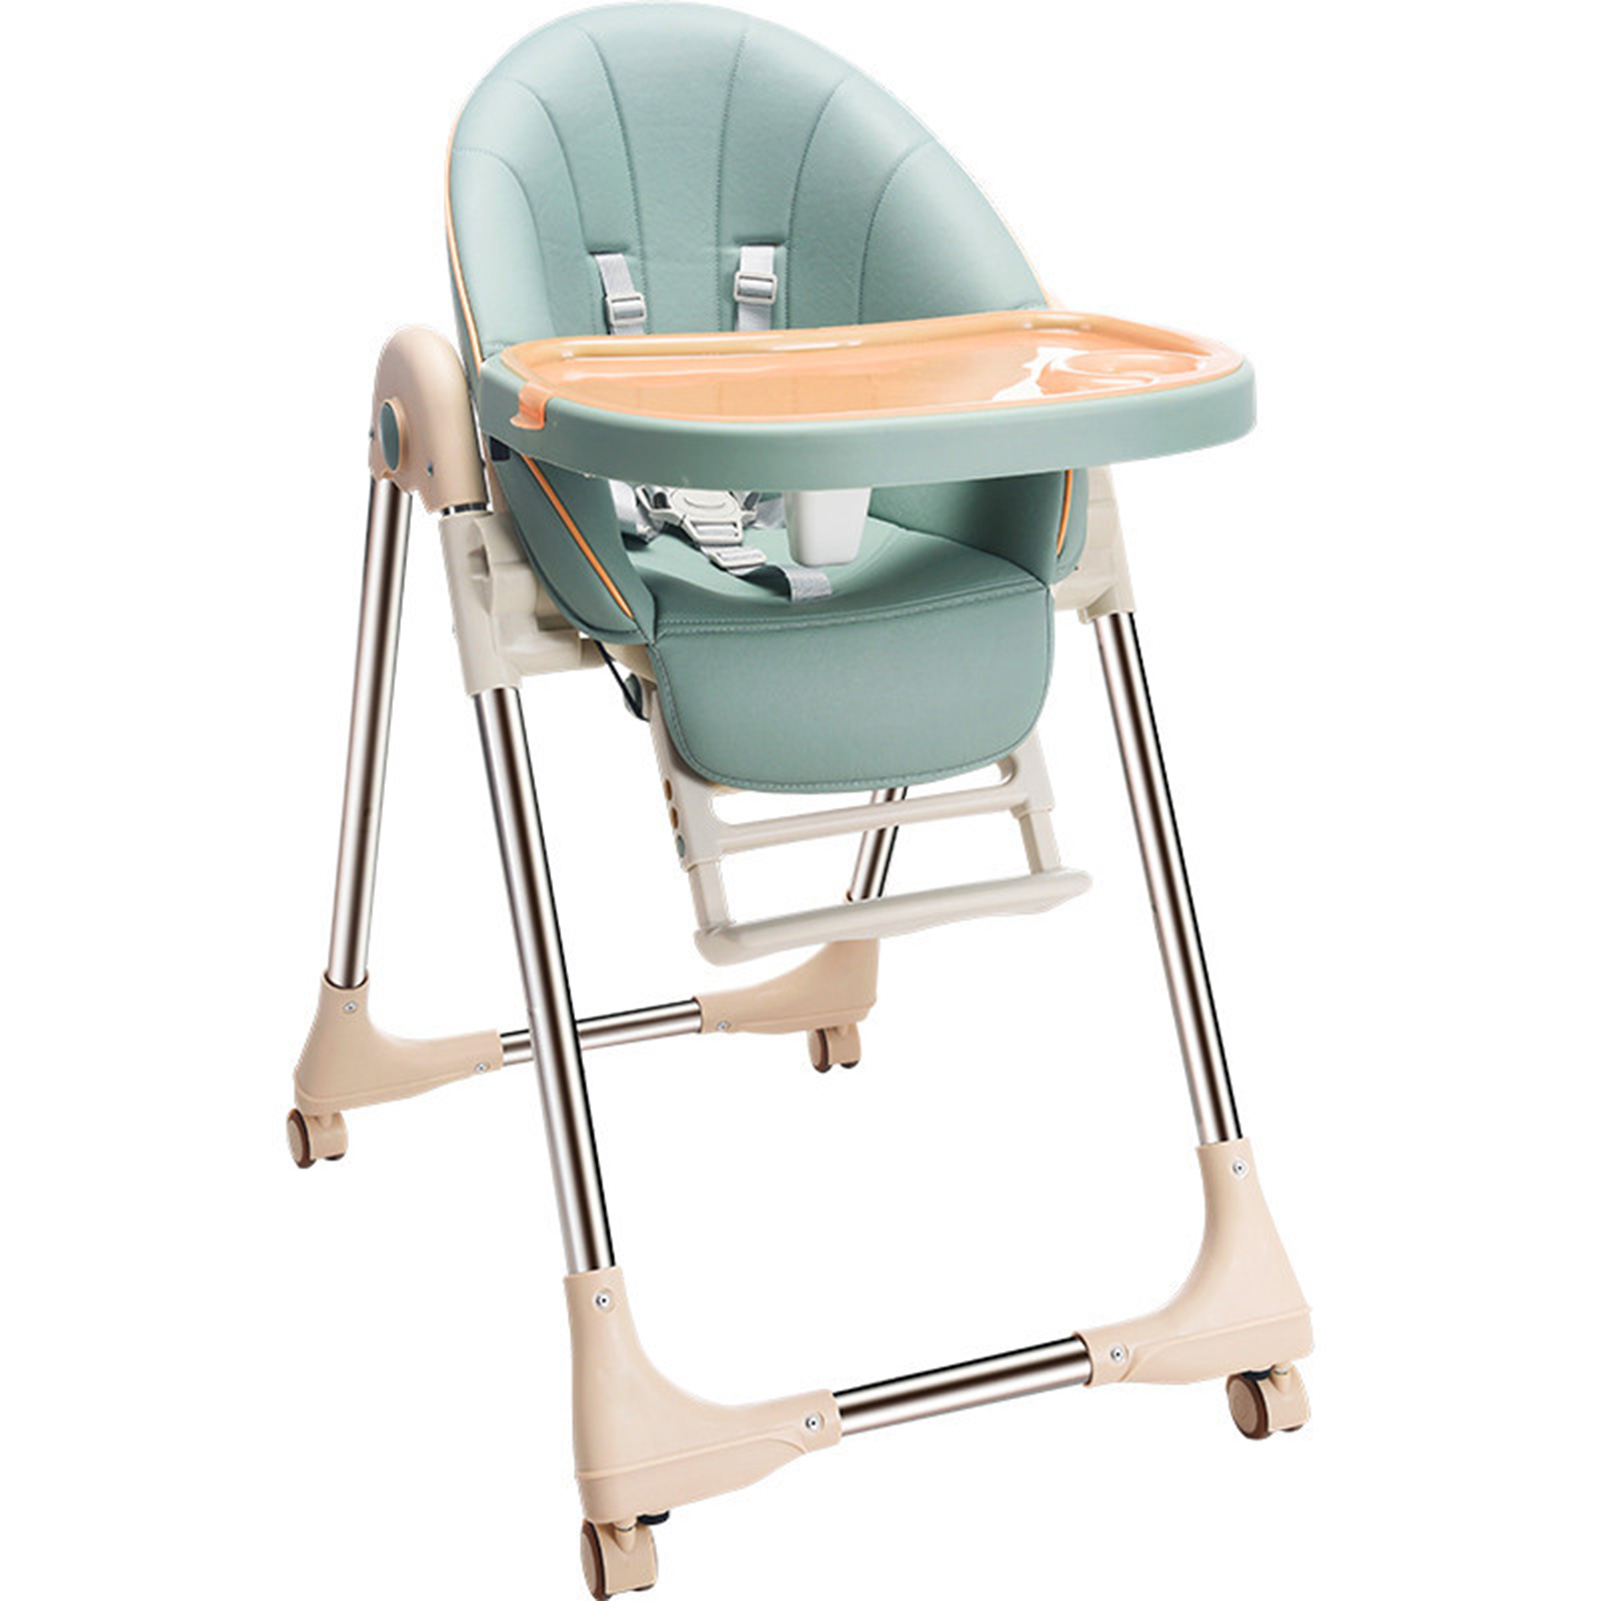 Toddler Baby Feeding Chair High Chair Dinning Chair With Adjustable Heigh For 0-6 Years Old Child